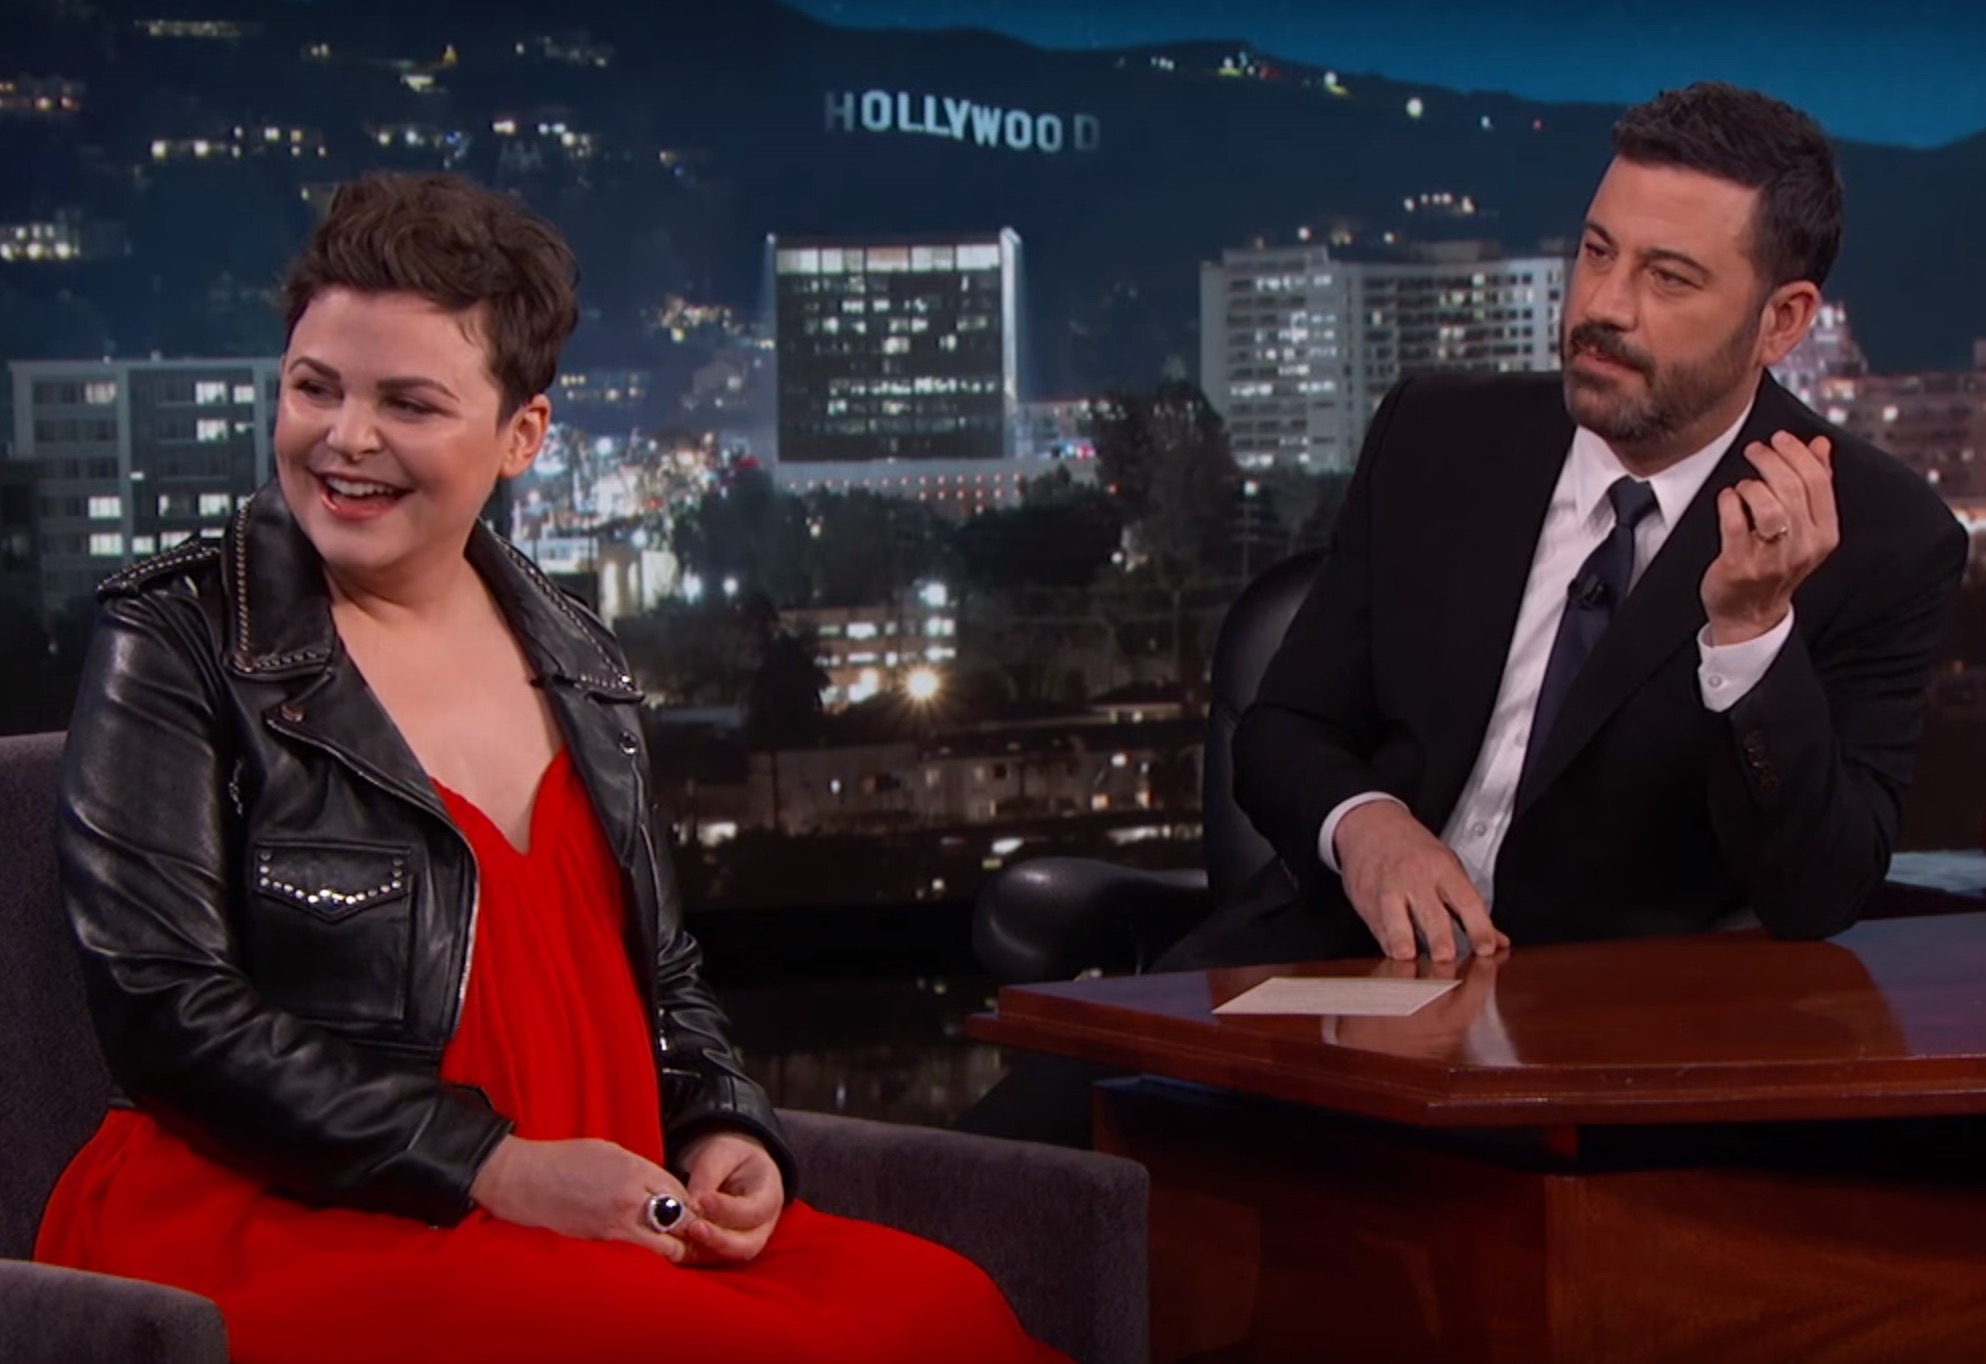 Jimmy Kimmel helped Ginnifer Goodwin pick out a name for her baby